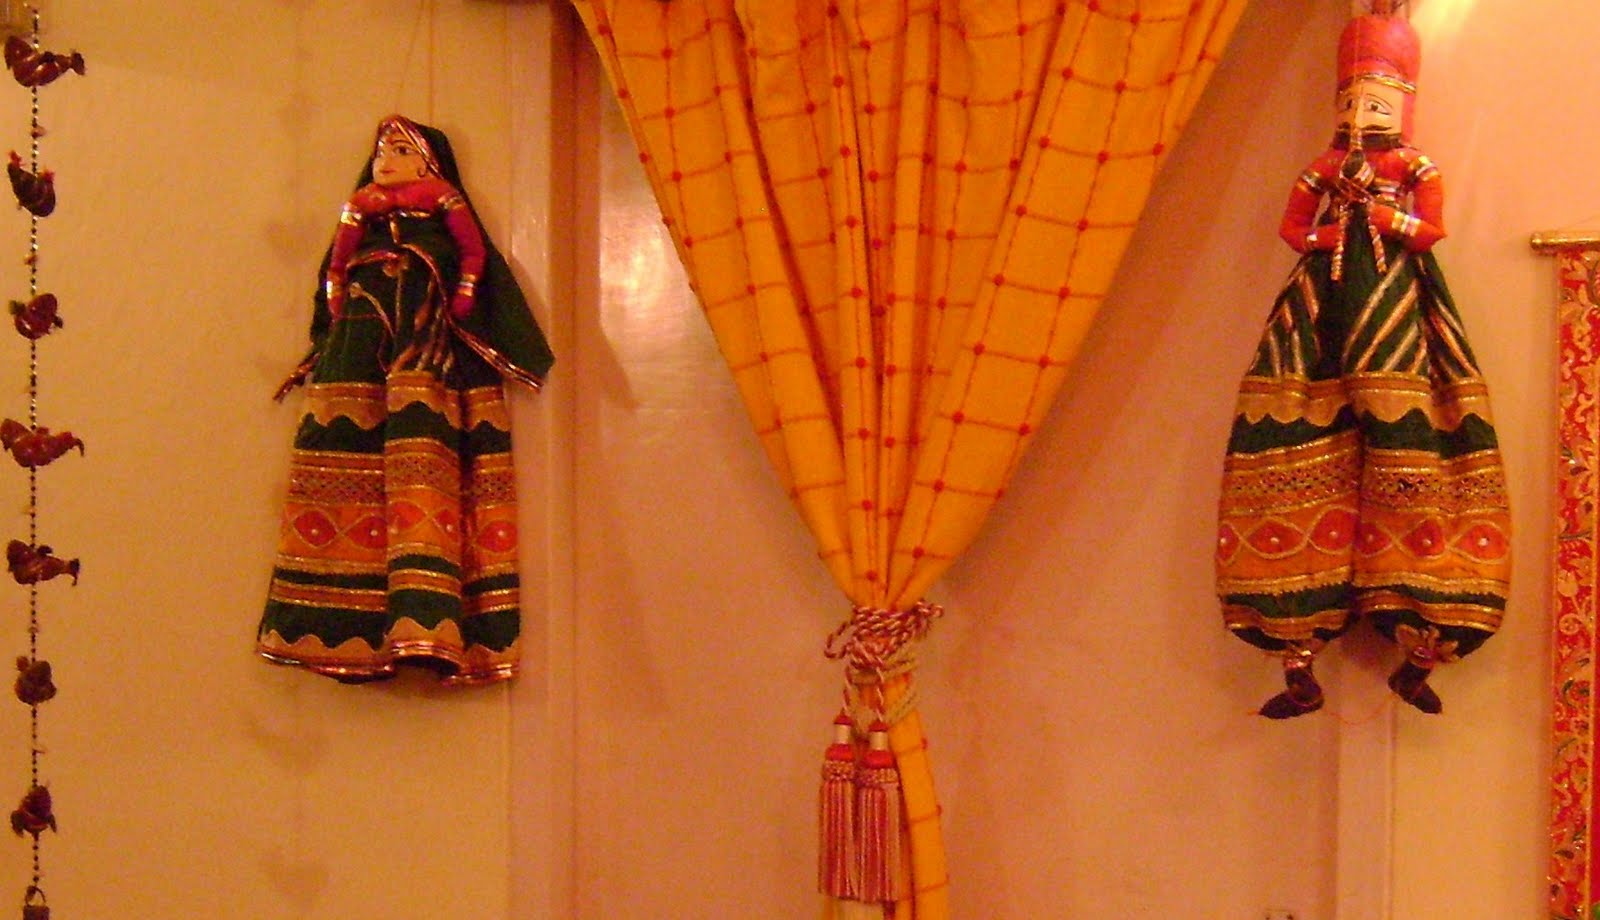 Indian Ethnic Decor For A Party Theme With Shawls Diy